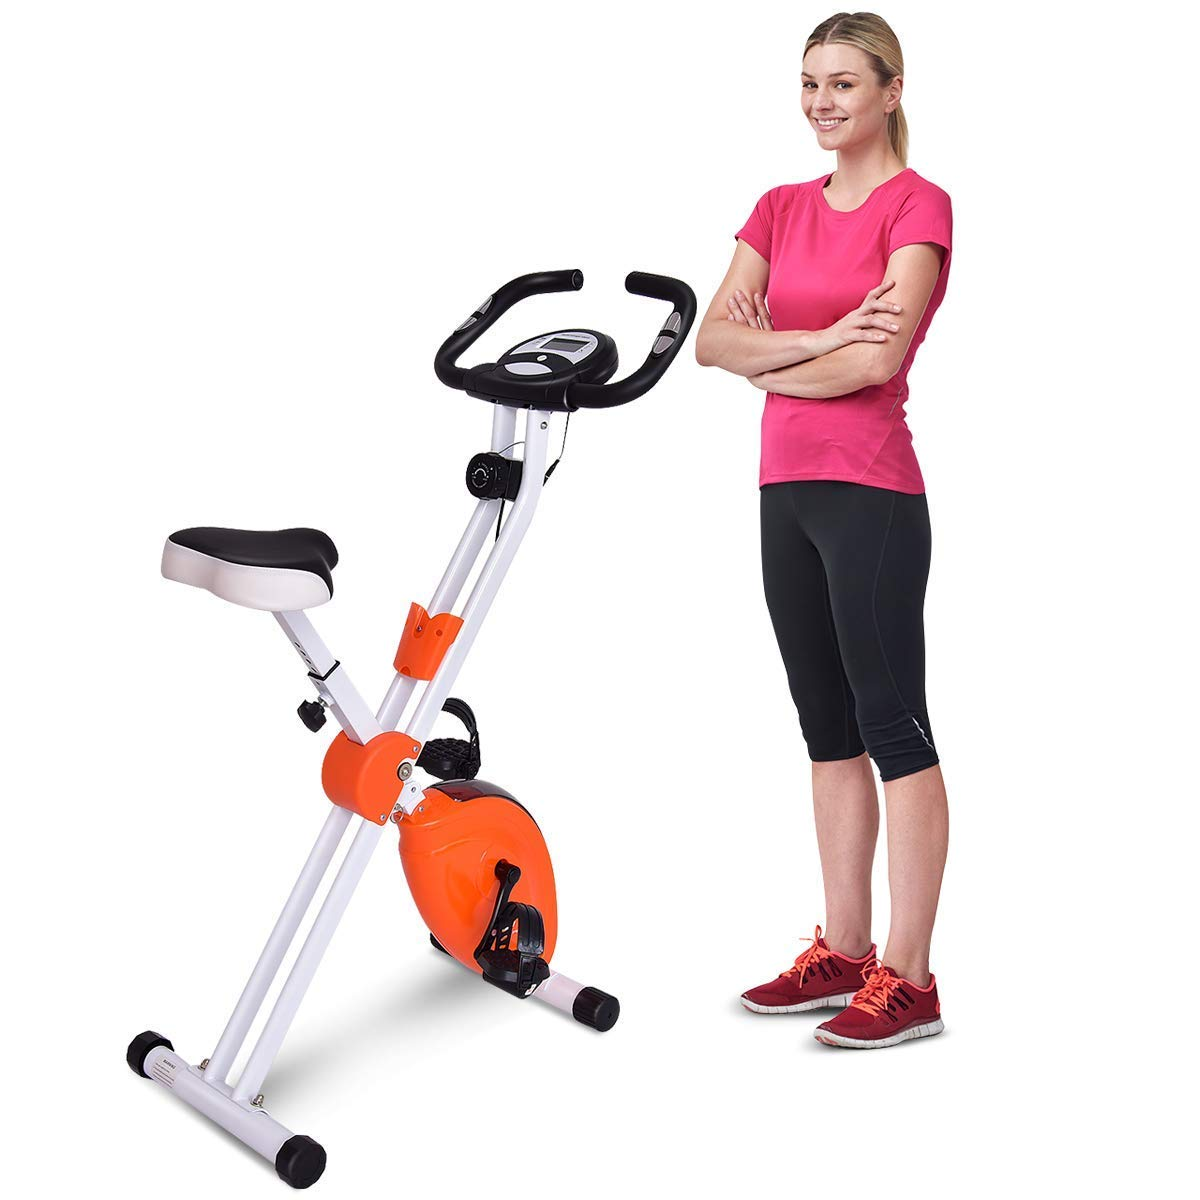 Goplus Upright Exercise Bike Stationary Bicycle 8 Resistance Levels and 7 Speed Levels Adjustable with Heart Rate Sensor and Phone Holder